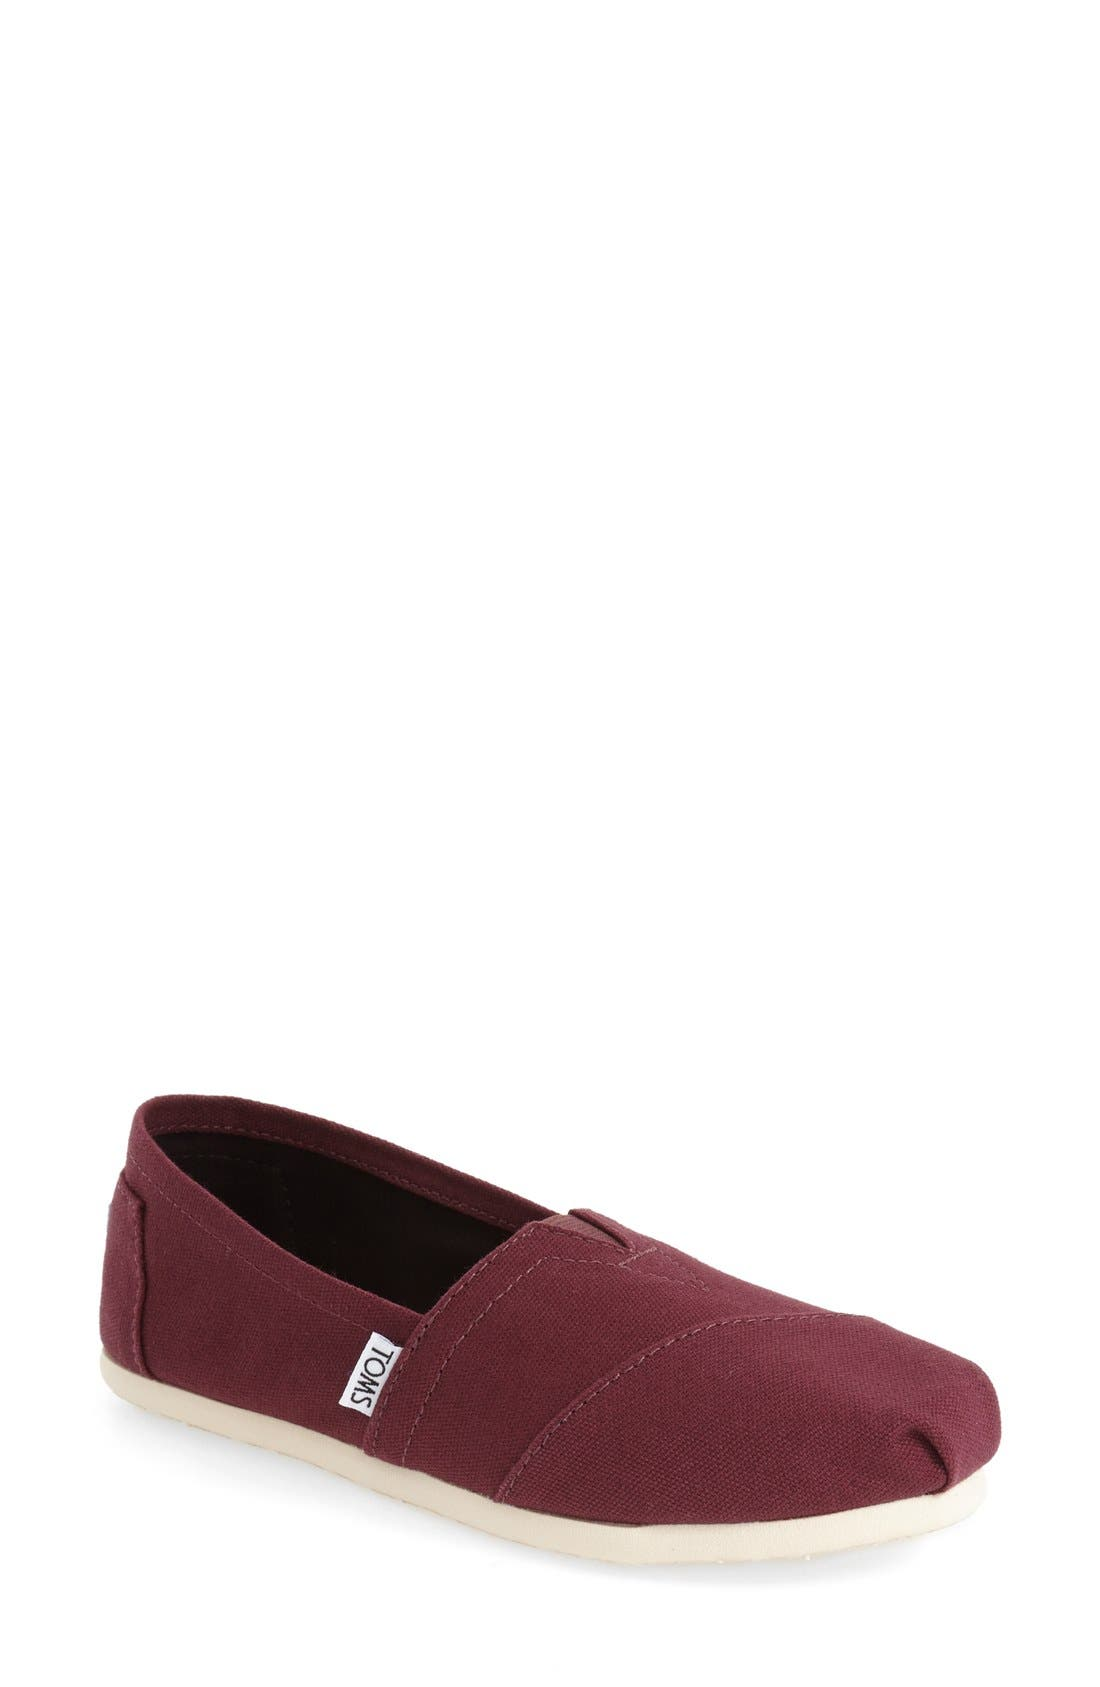 Alternate Image 1 Selected - TOMS Classic Slip-On (Women)